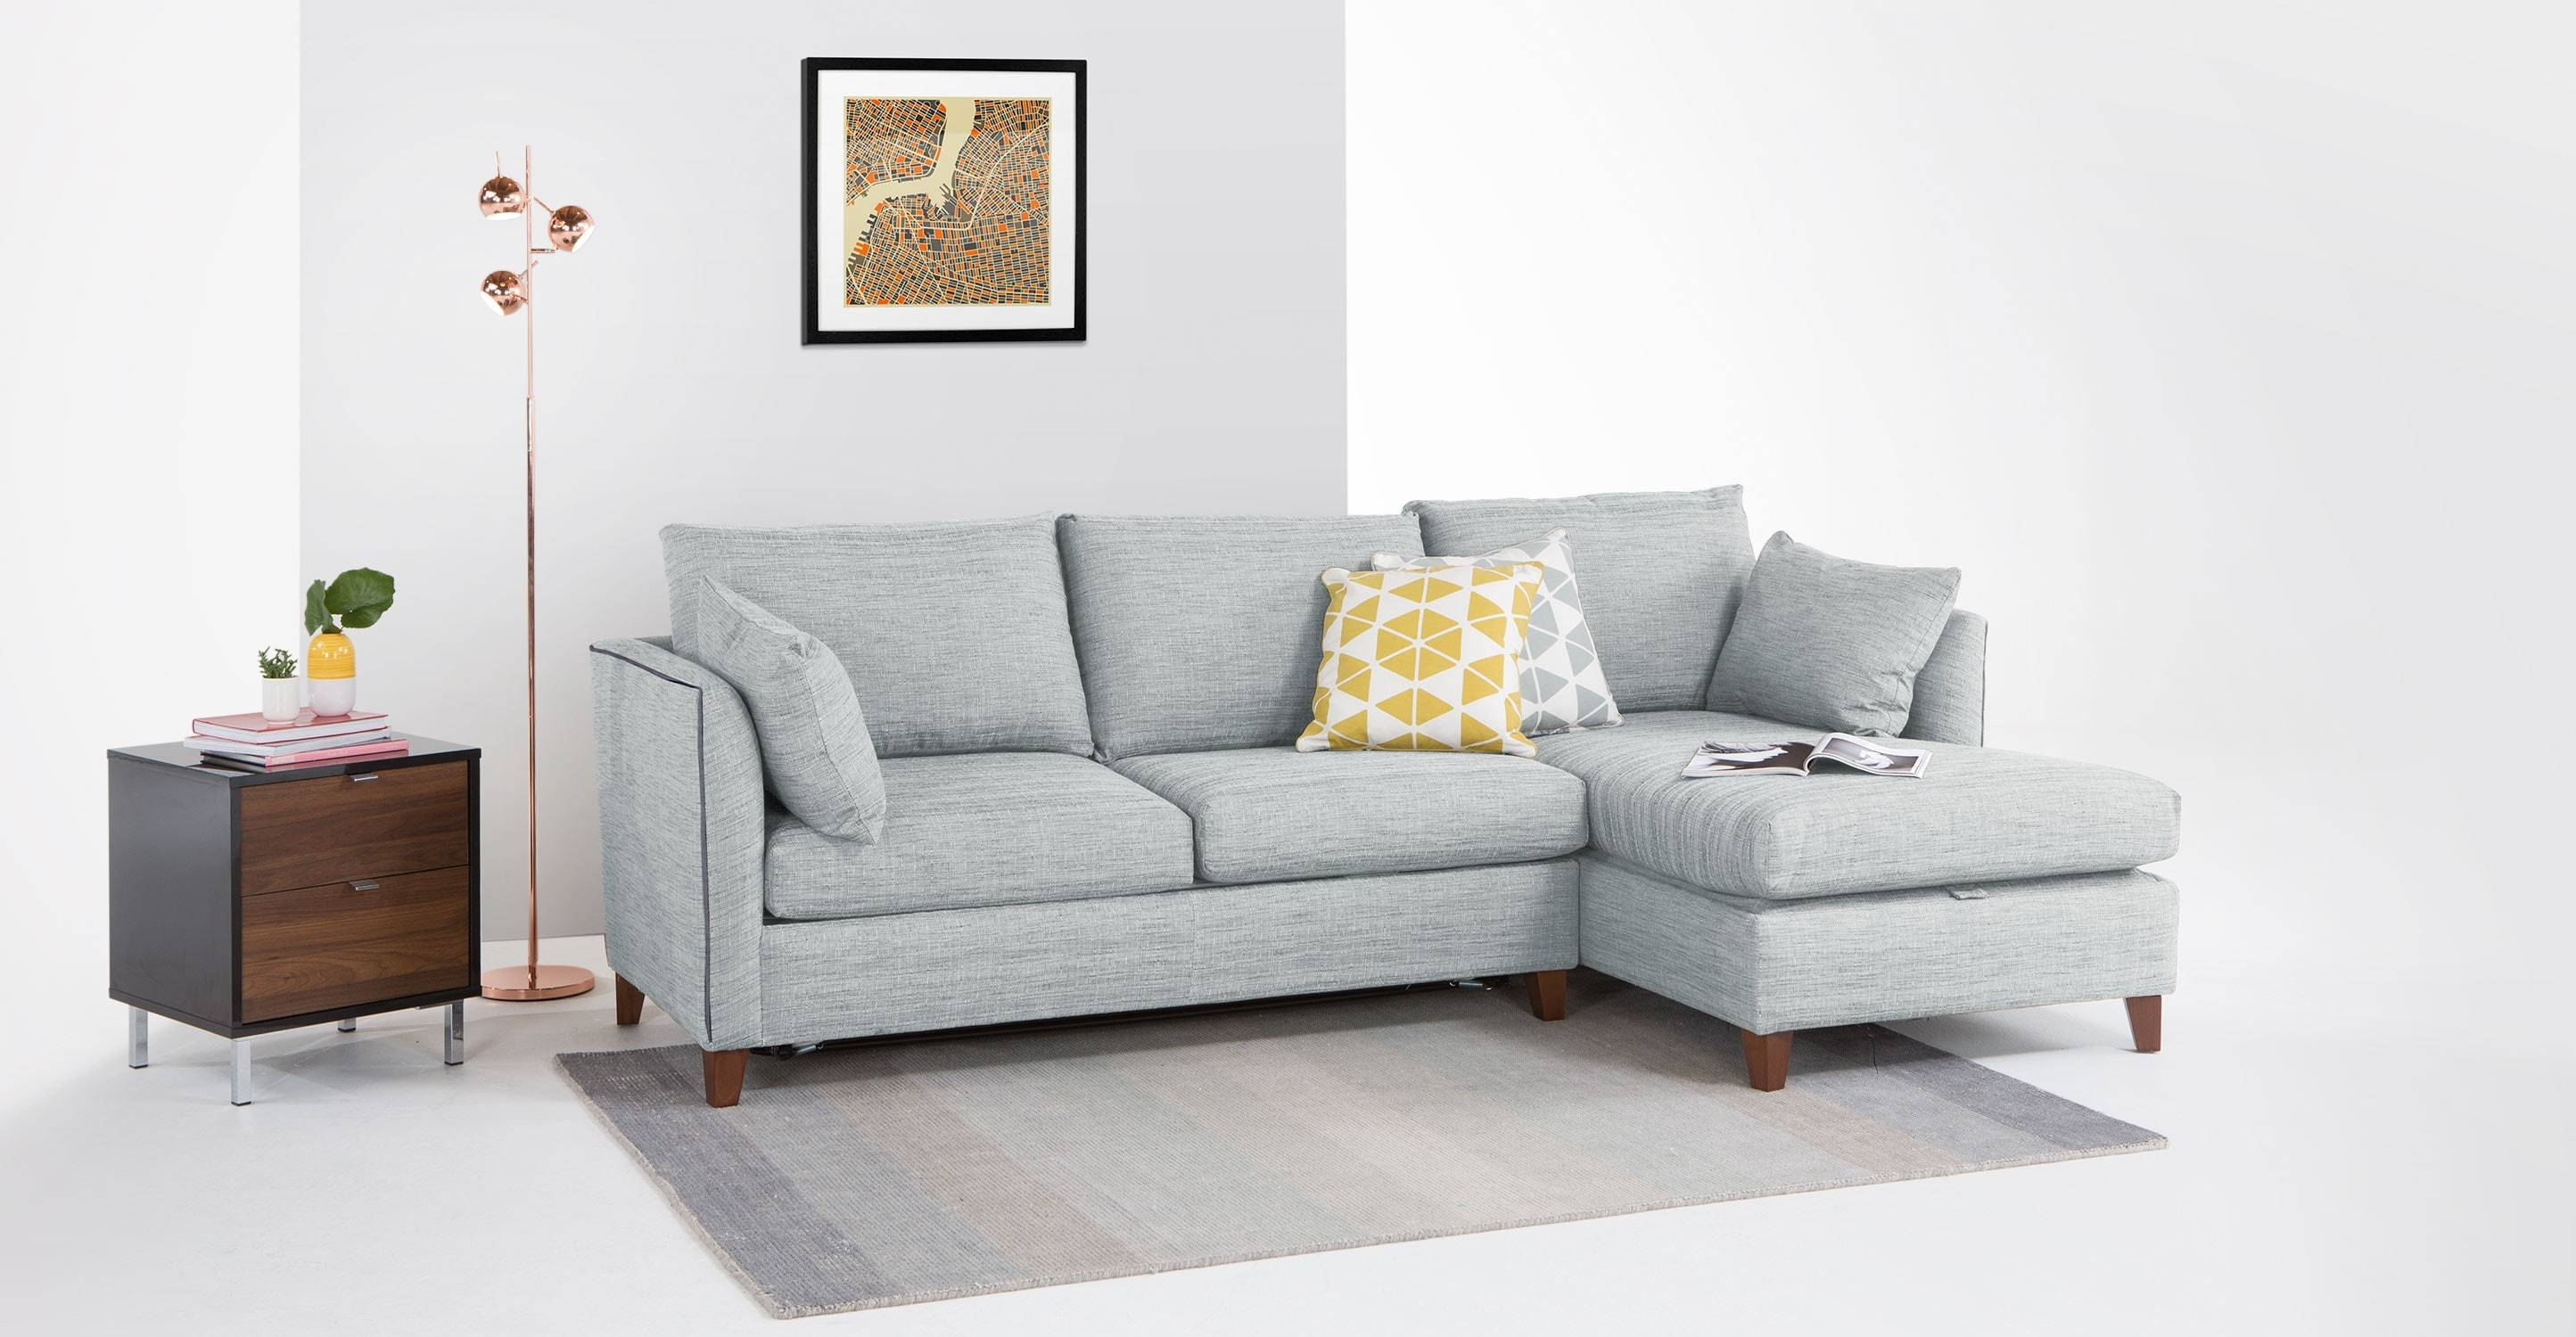 15 Best Ideas of Blue Grey Sofas